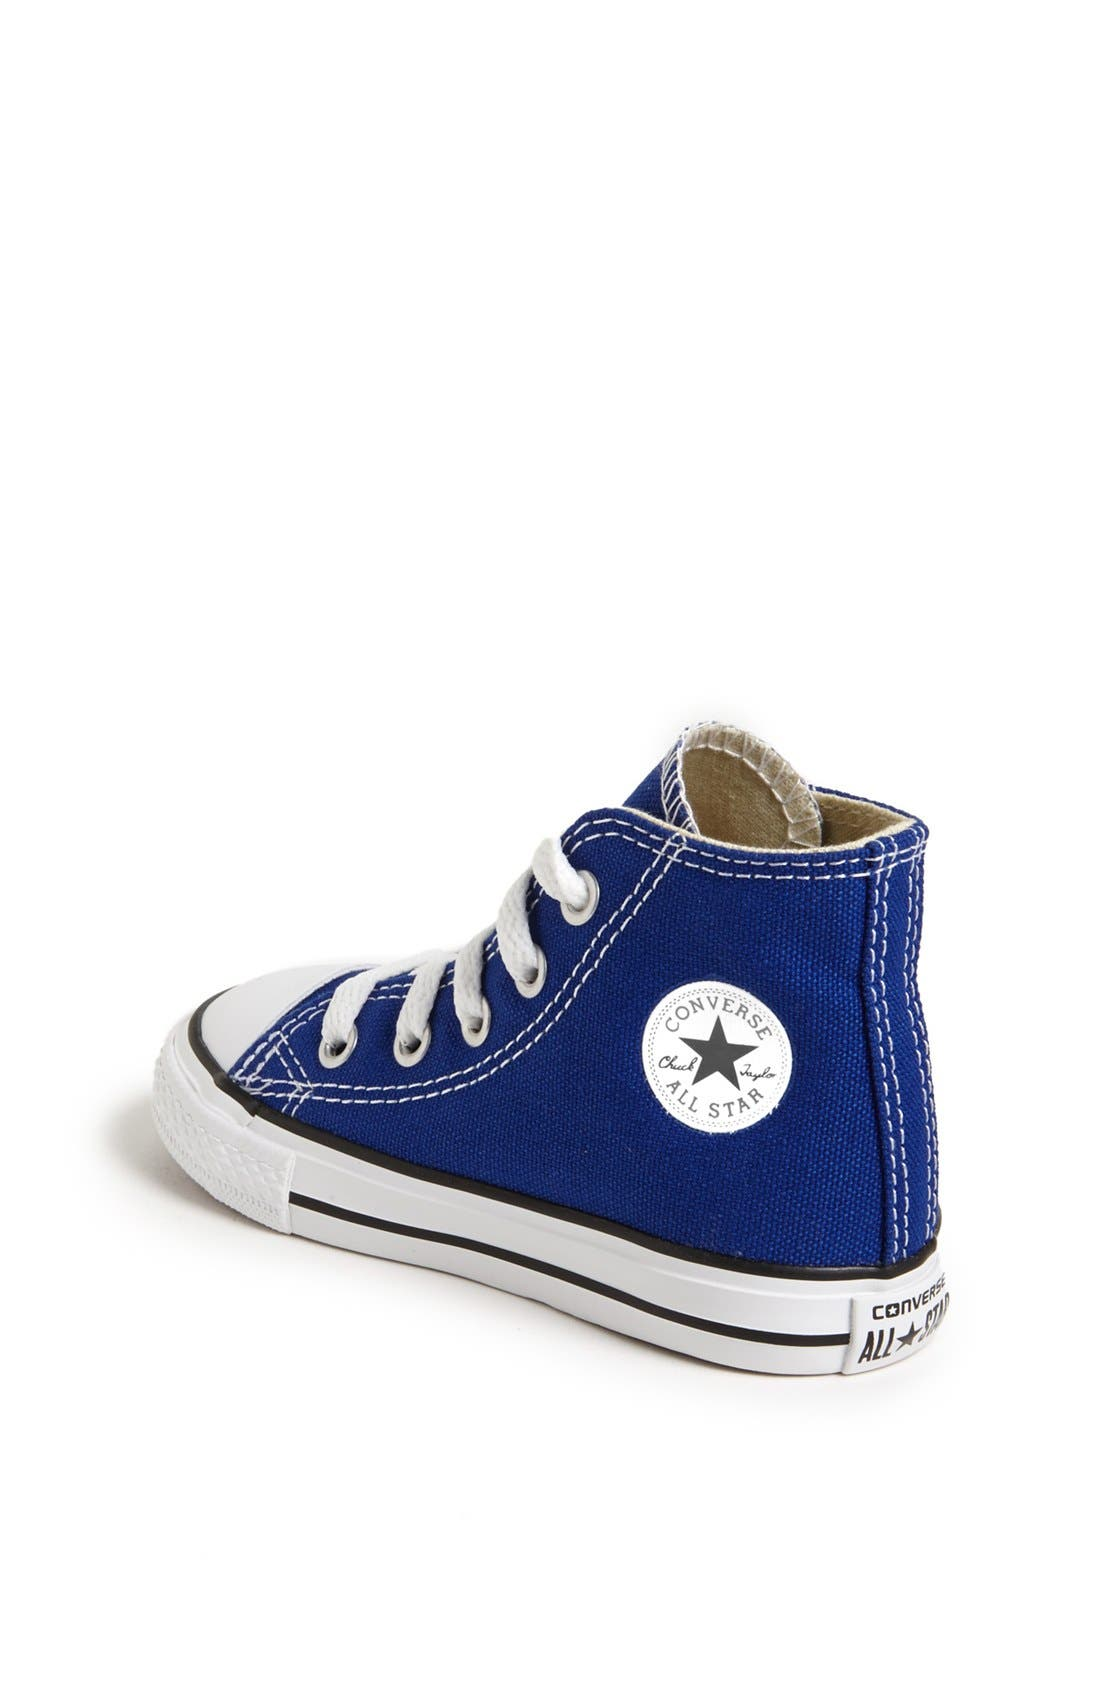 Alternate Image 2  - Converse Chuck Taylor® All Star® High Top Sneaker (Baby, Walker, Toddler & Little Kid)